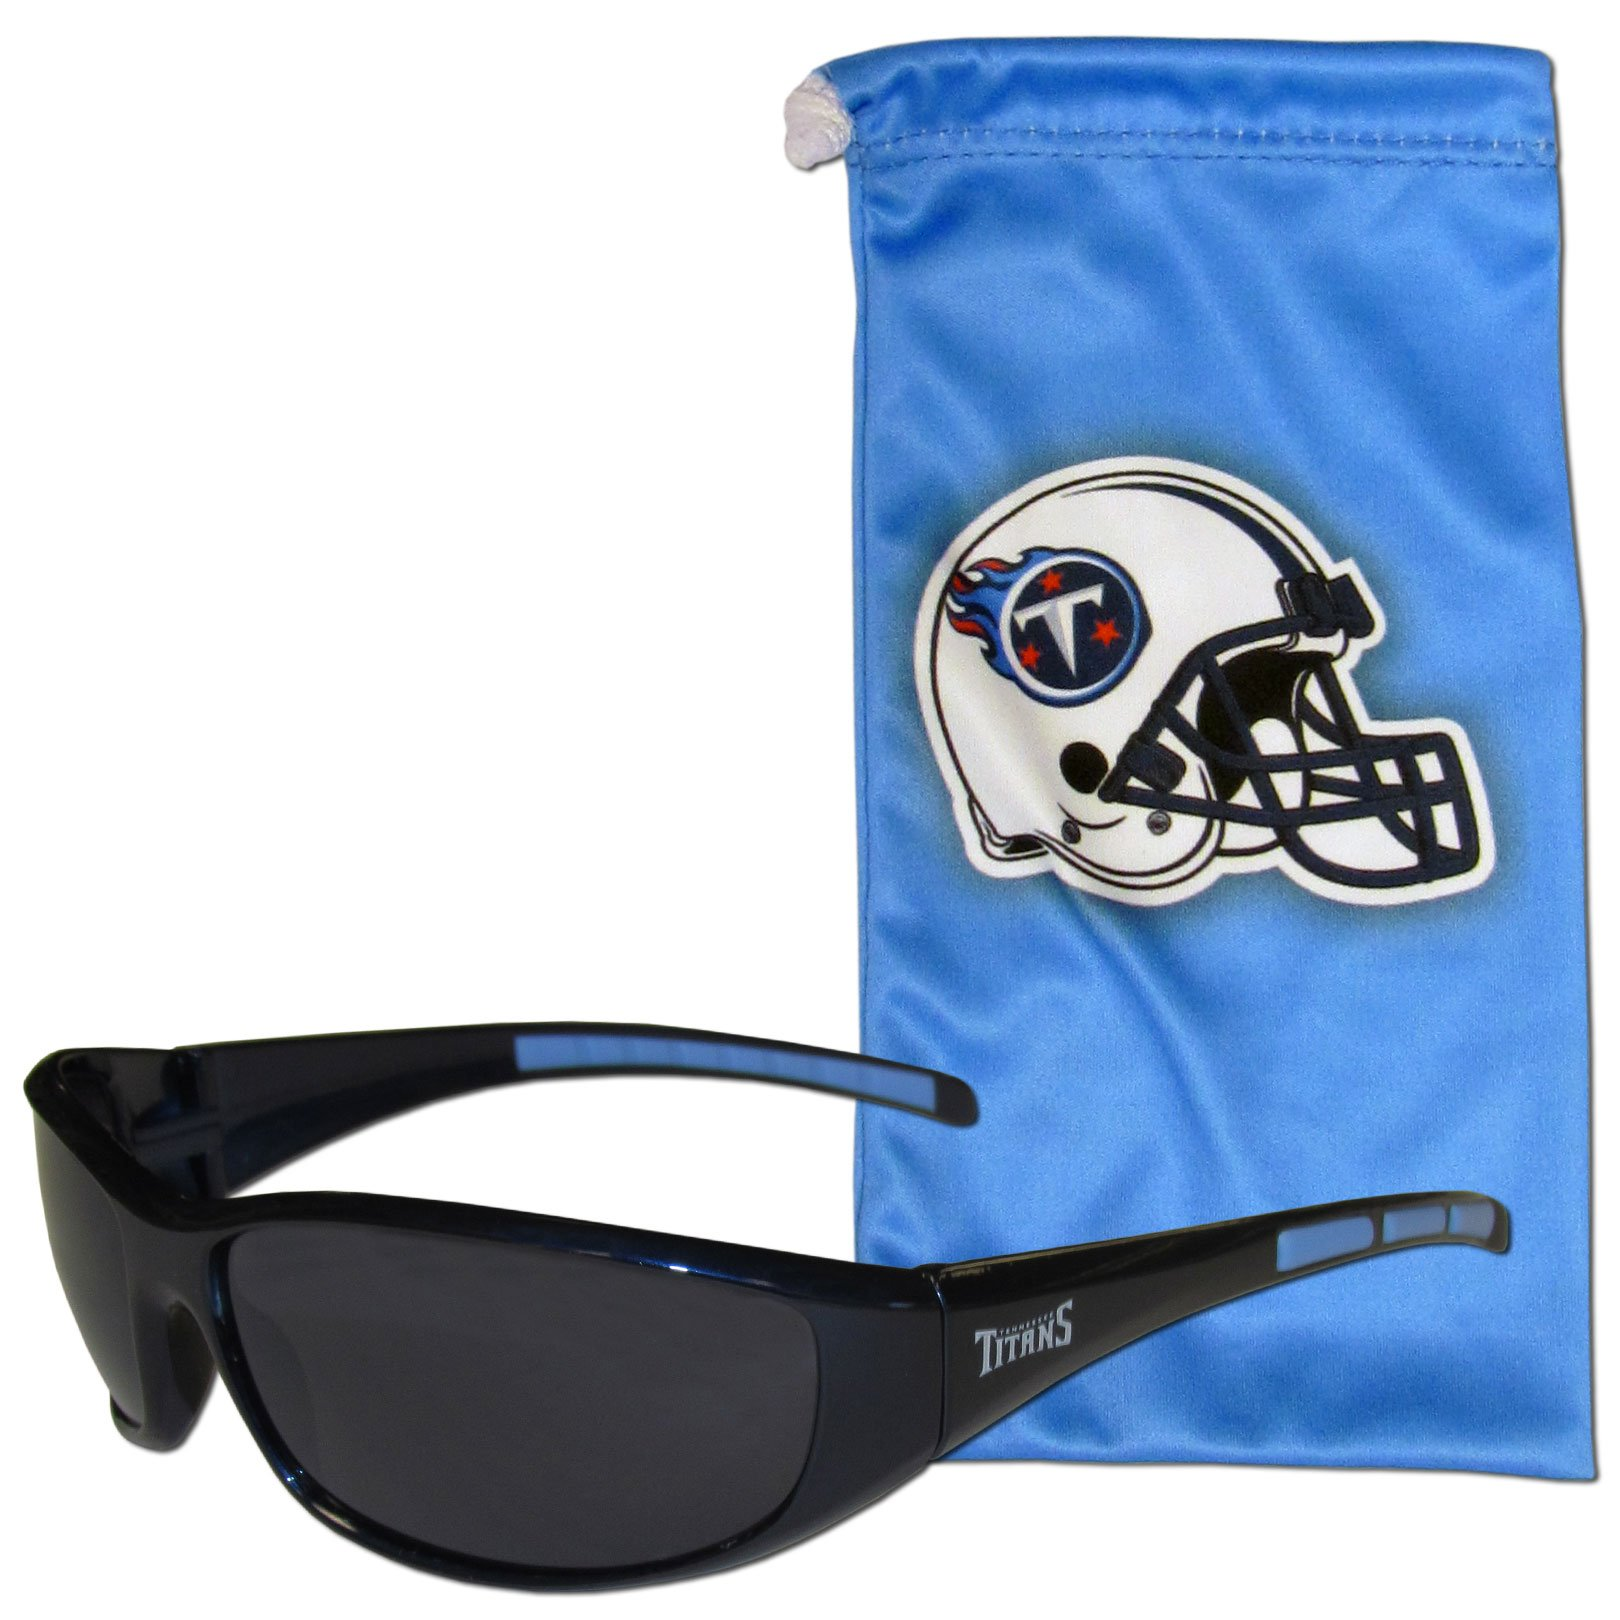 NFL Tennessee Titans Adult Sunglass and Bag Set, Blue